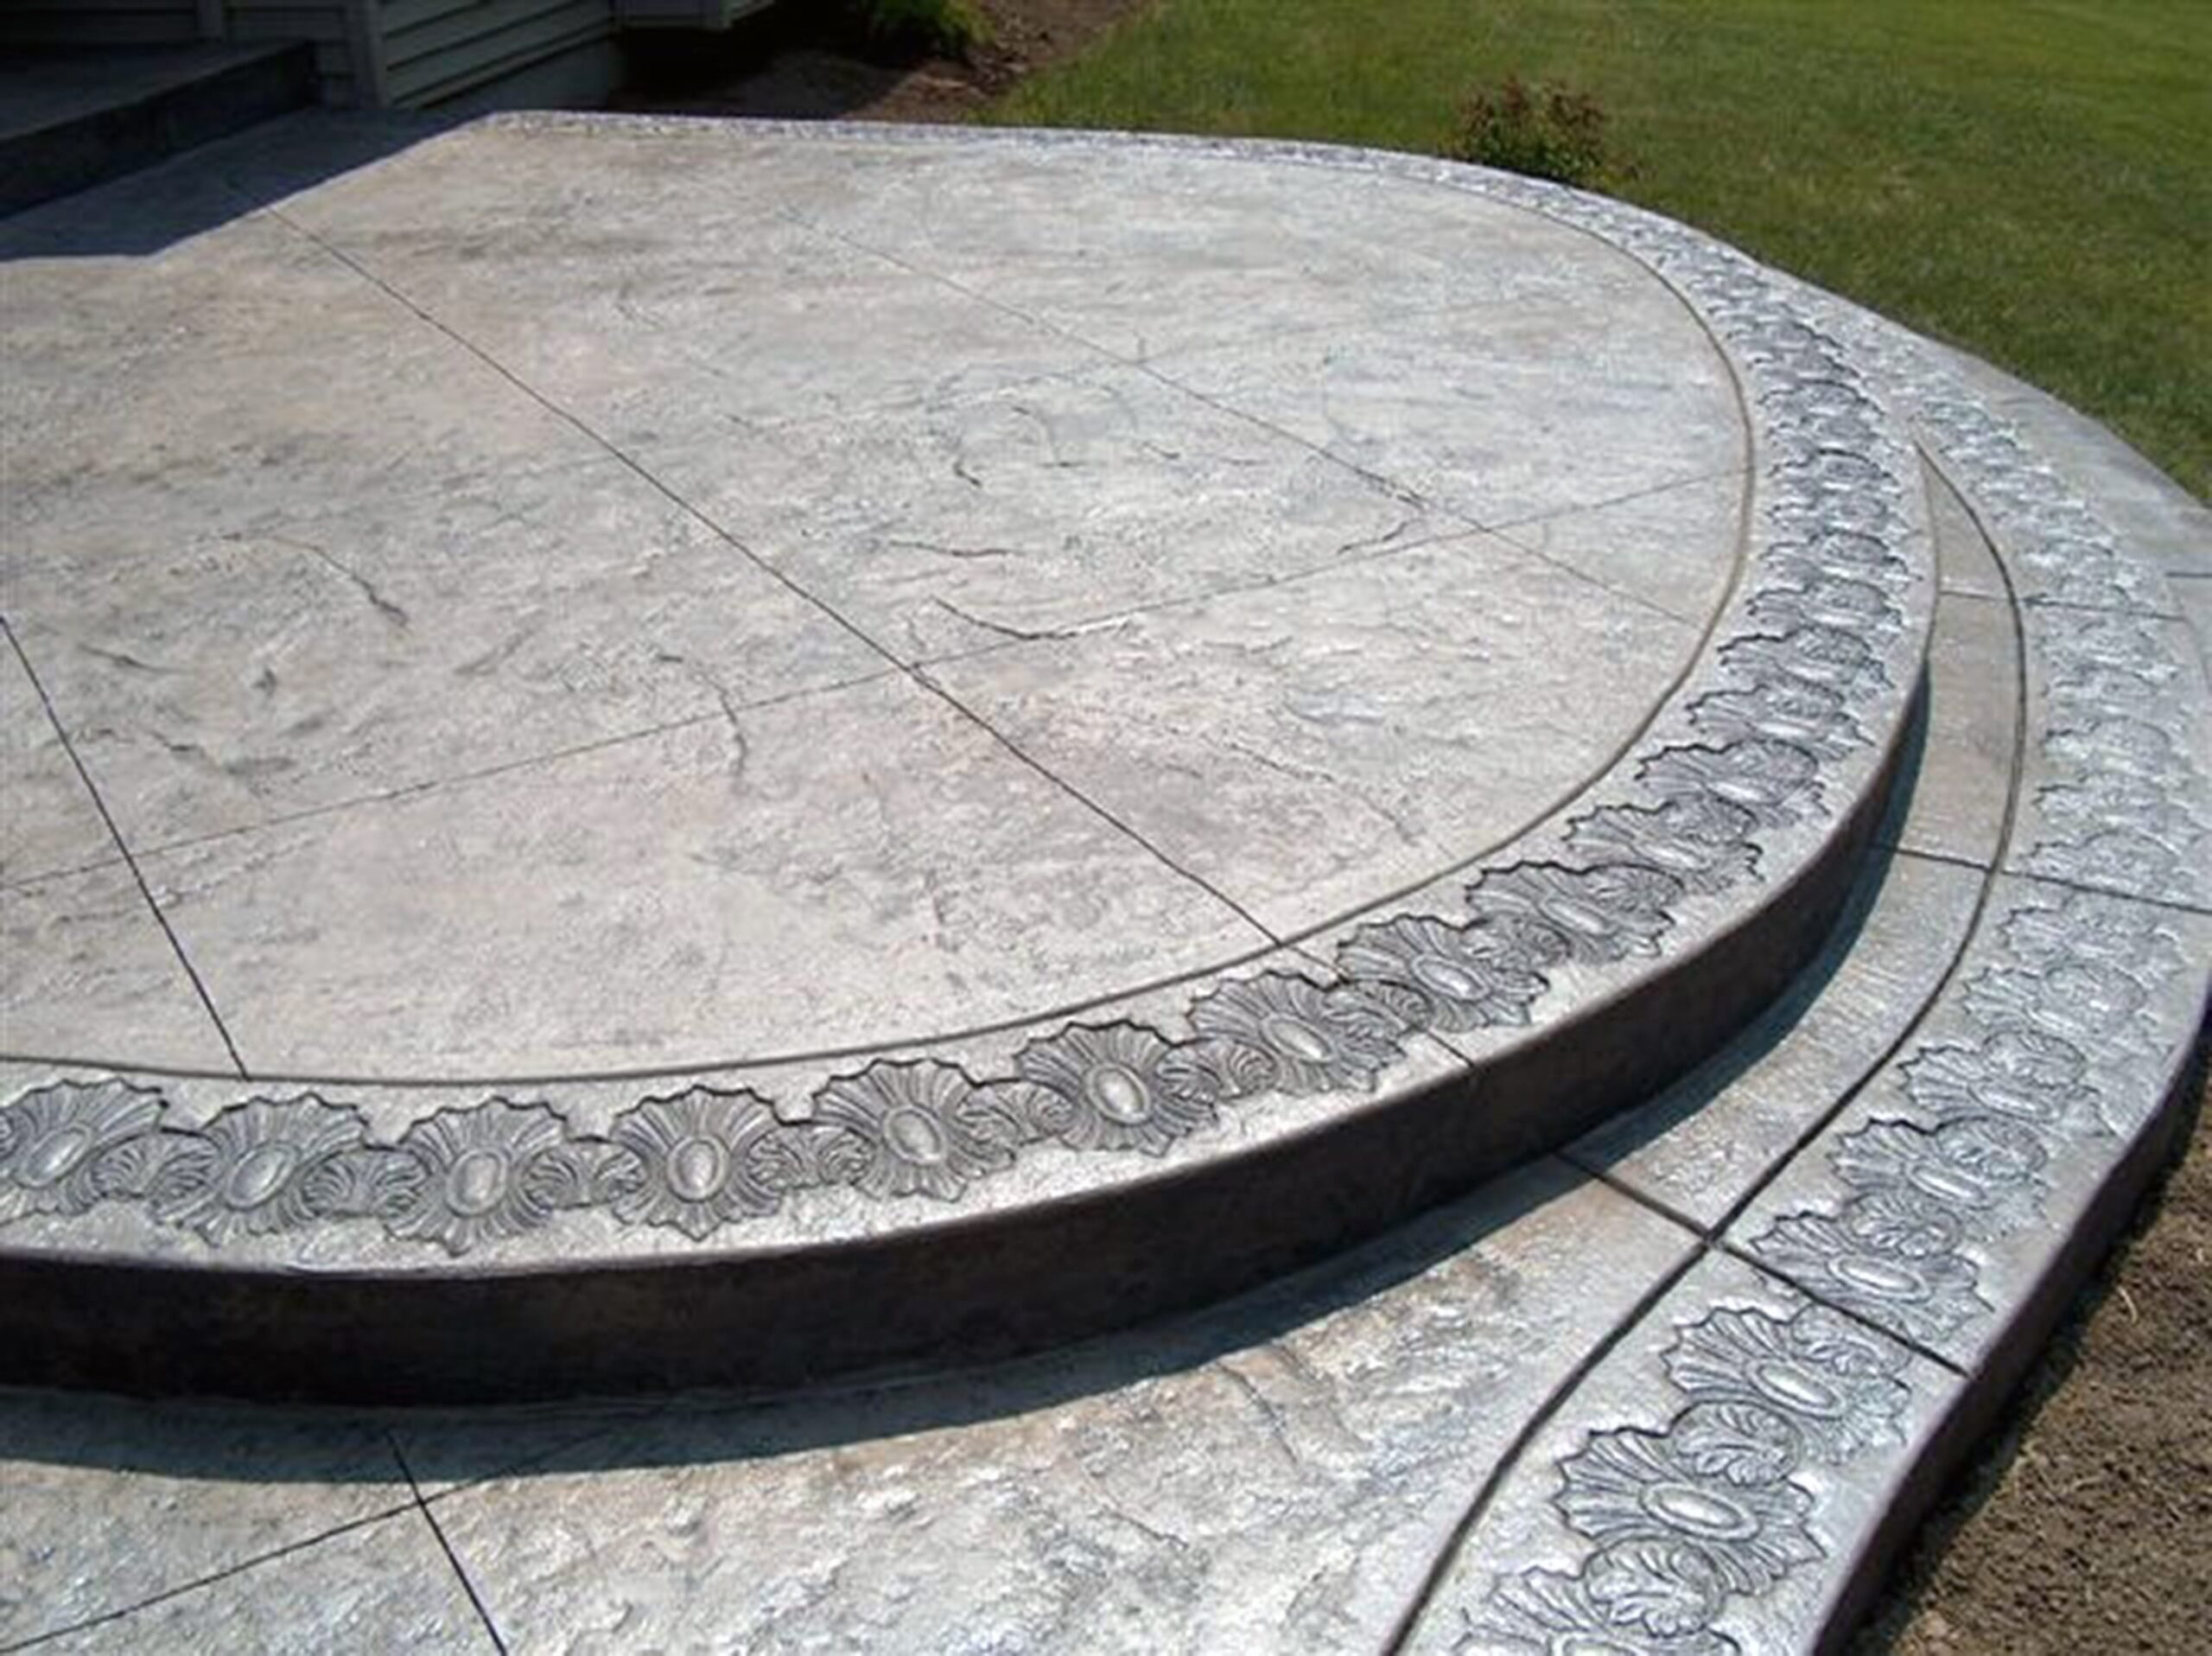 We Bring To You – Seven Tips for Getting Better Texture on Stamped Concrete!